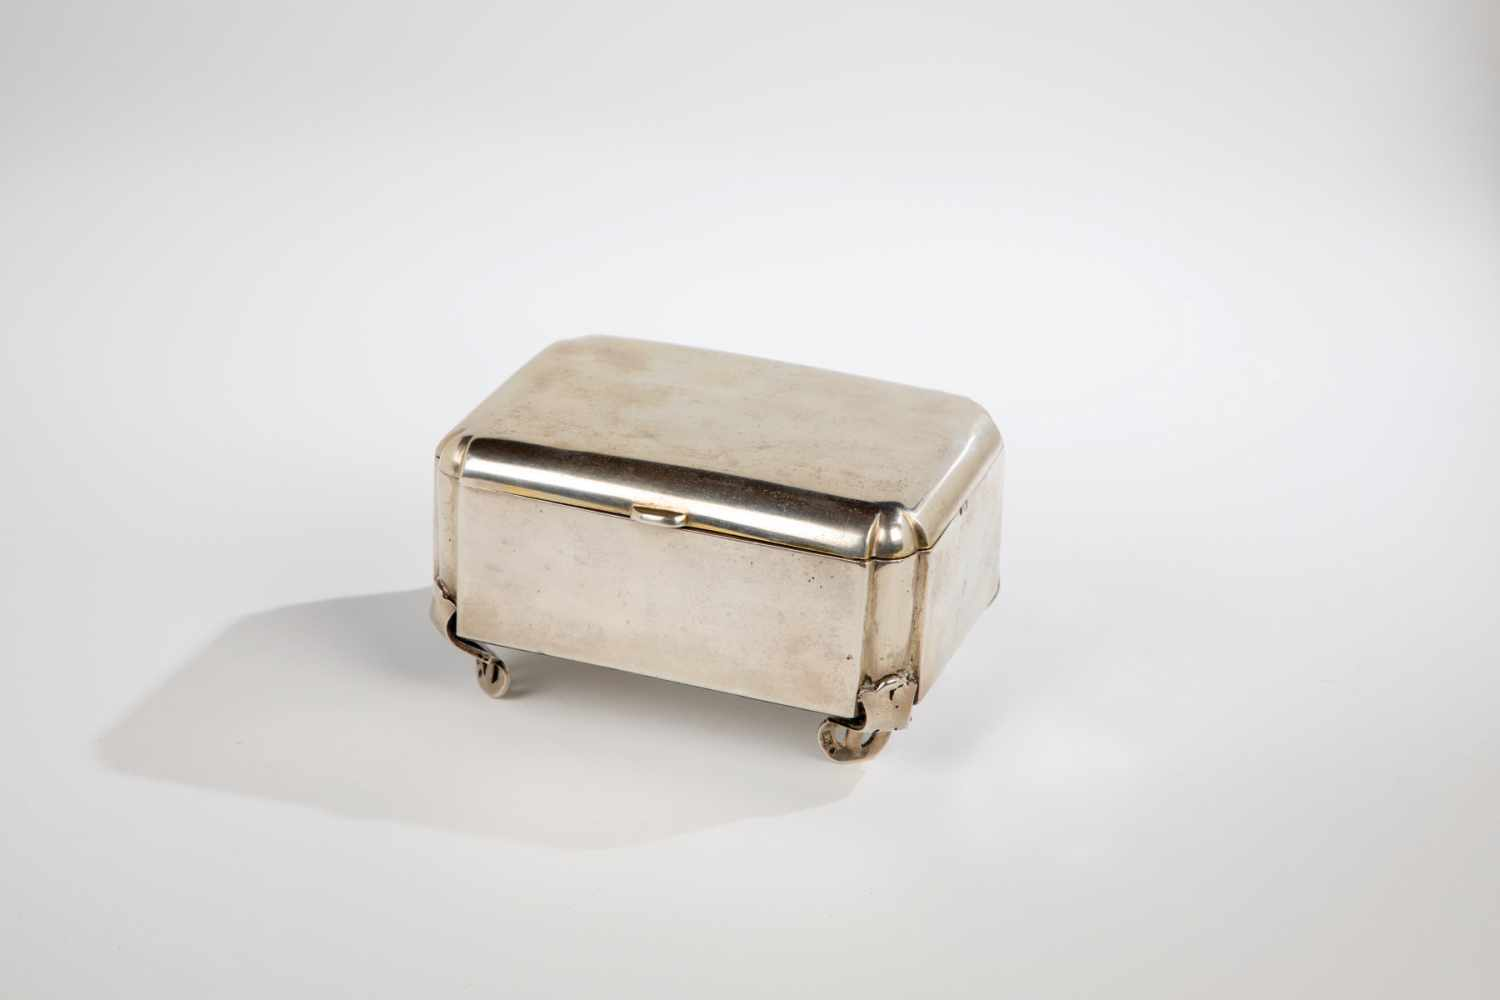 Los 26 - A silver tin. Russia. Moscow, Vasiliy Ivanovitch Puljetkin, 1908-1917. Gilt interior. Onfour feet.